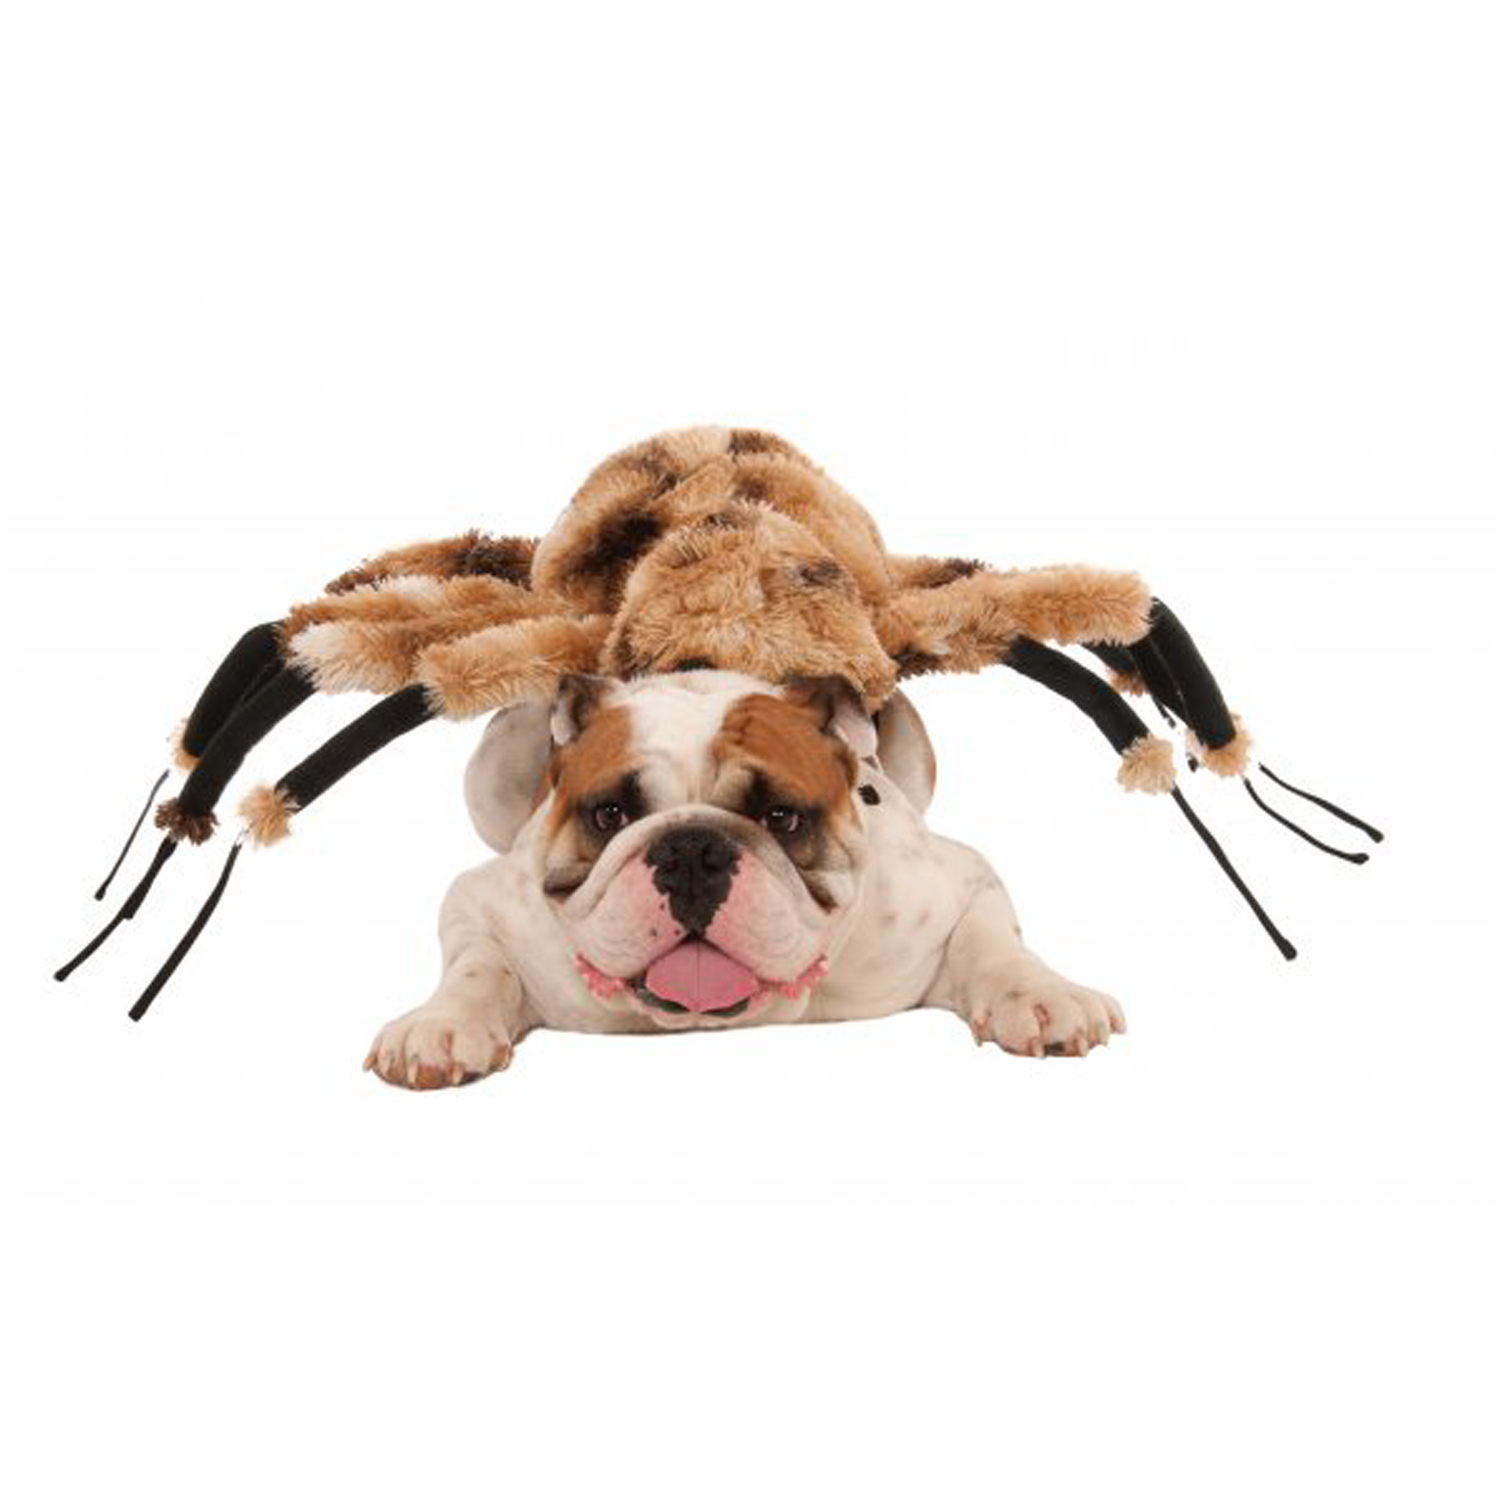 Rubieu0027s Giant Spider Dog Costume  sc 1 st  BaxterBoo & Rubieu0027s Giant Spider Dog Costume | BaxterBoo